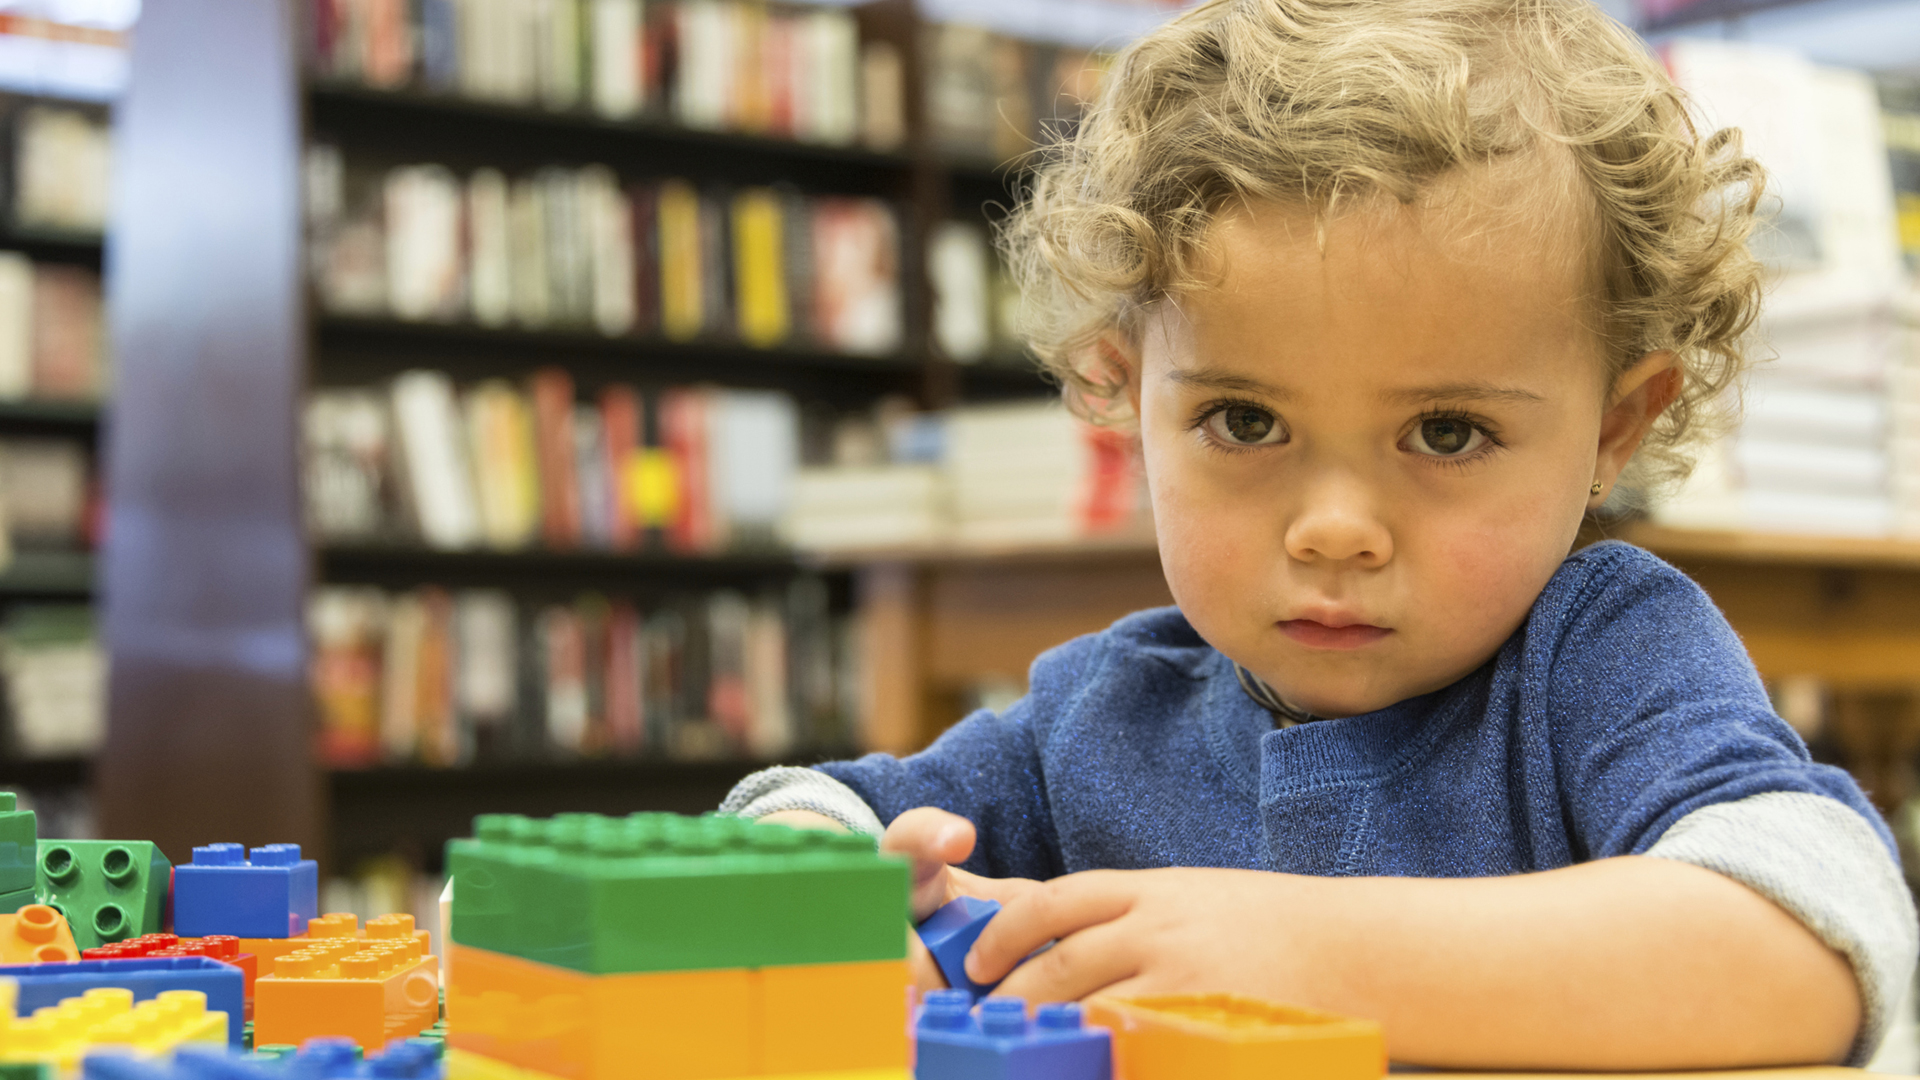 Autistic child playing with blocks | Sheknows.com